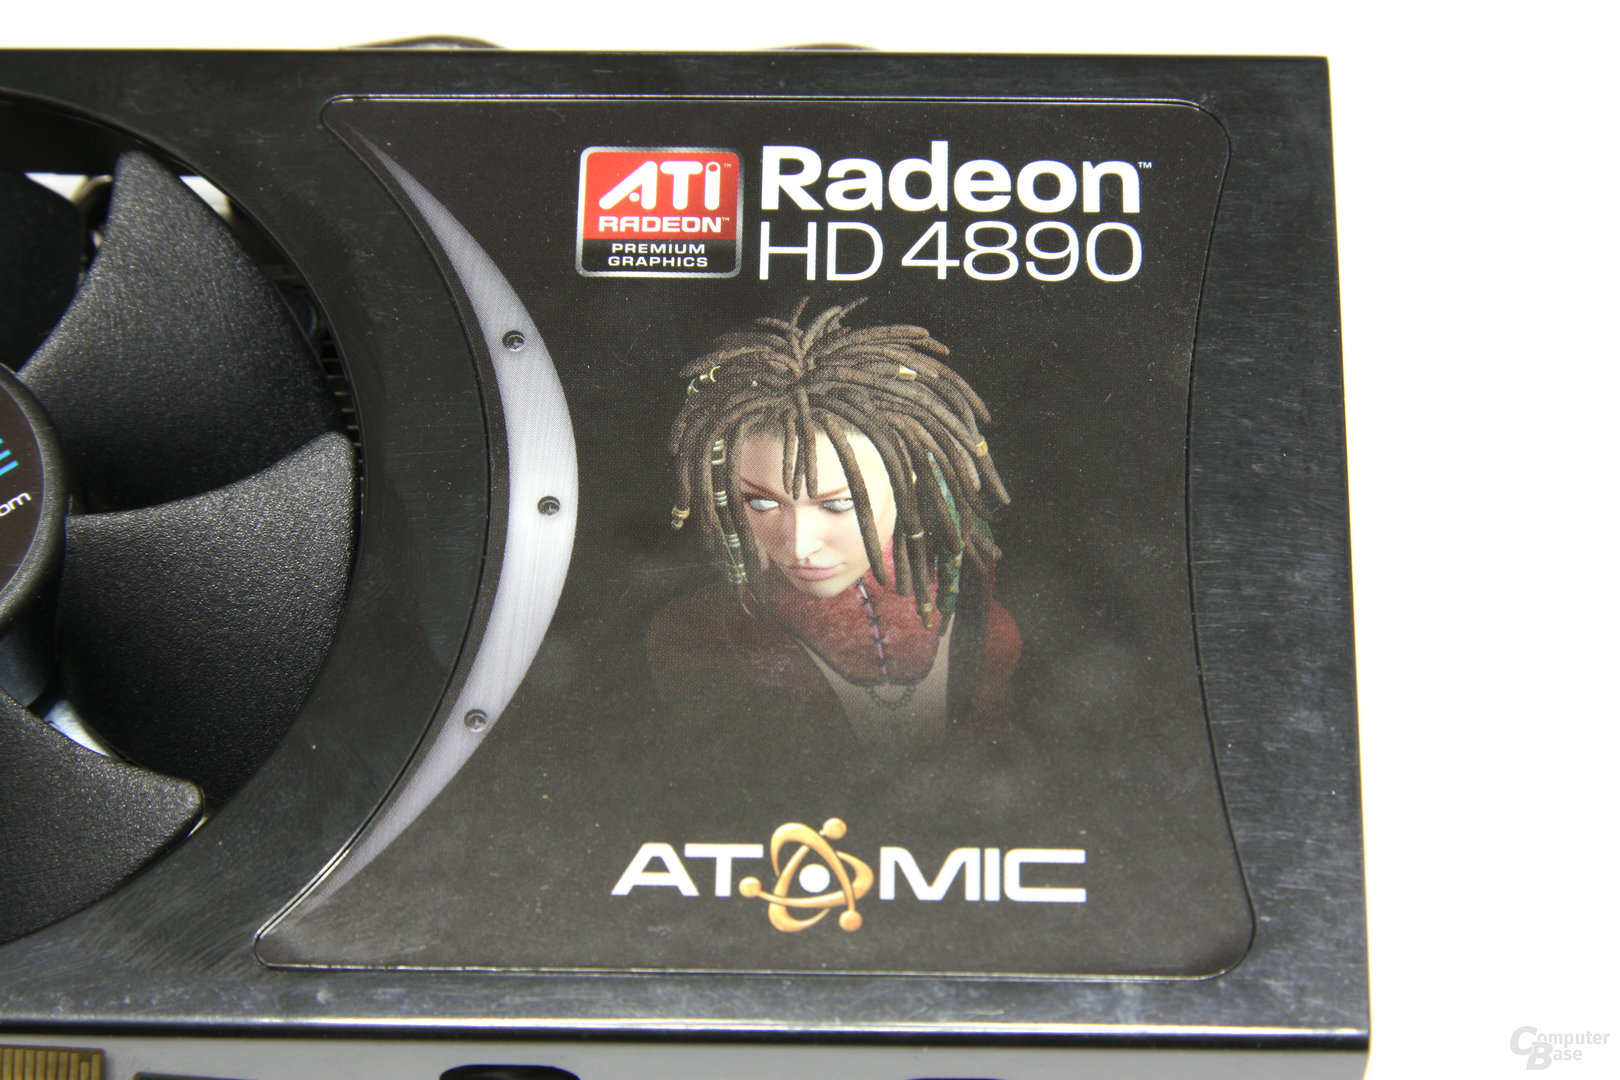 Radeon HD 4890 Atomic Logo